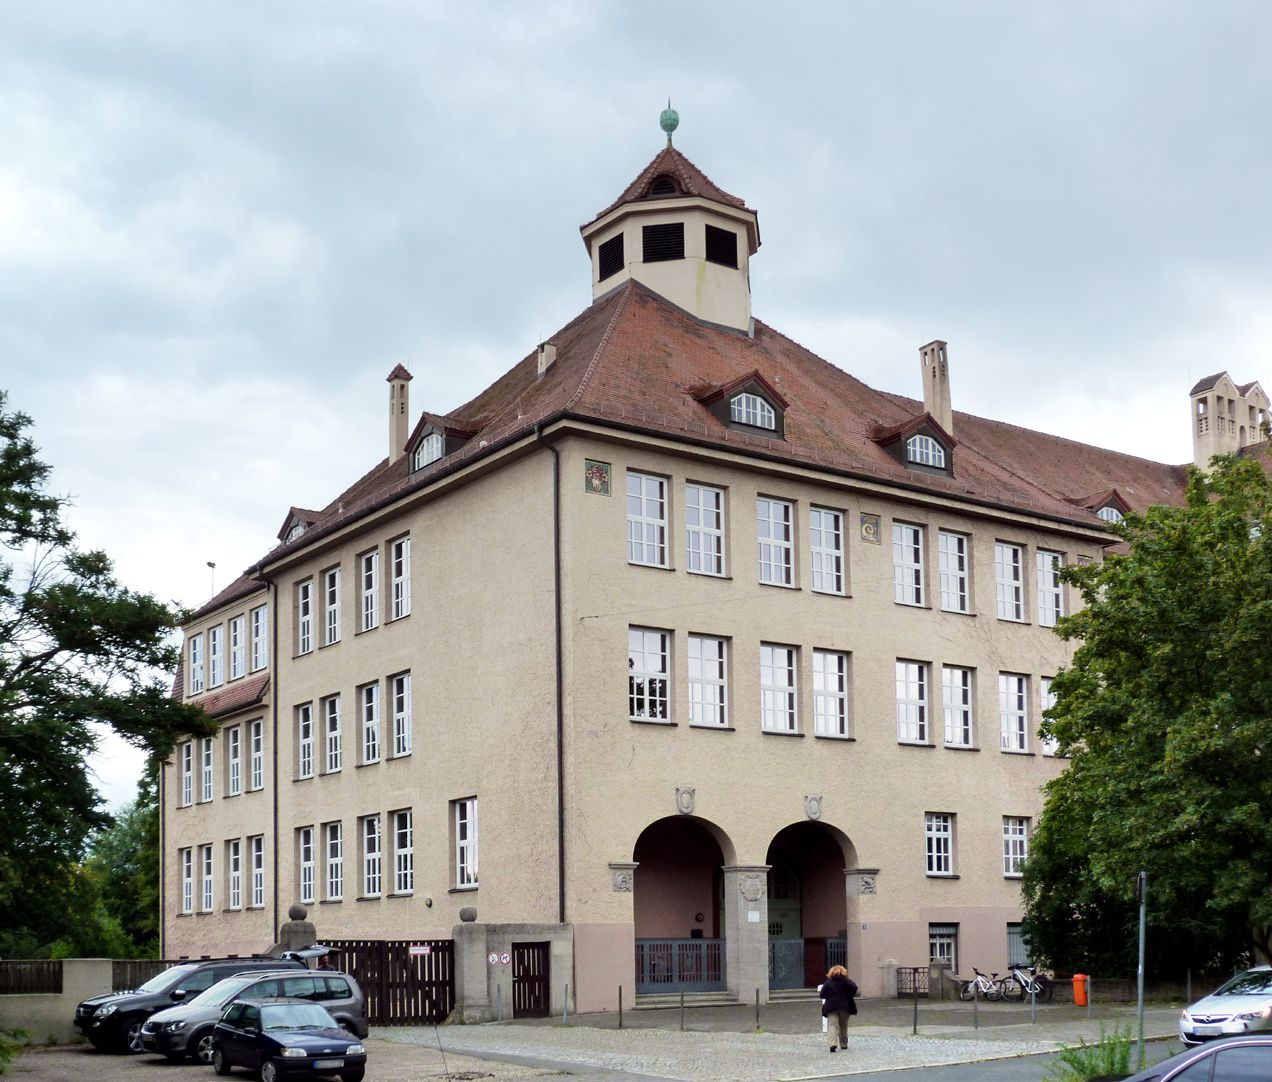 Georg-Paul-Amberger-School Corner, entrance, view from the north